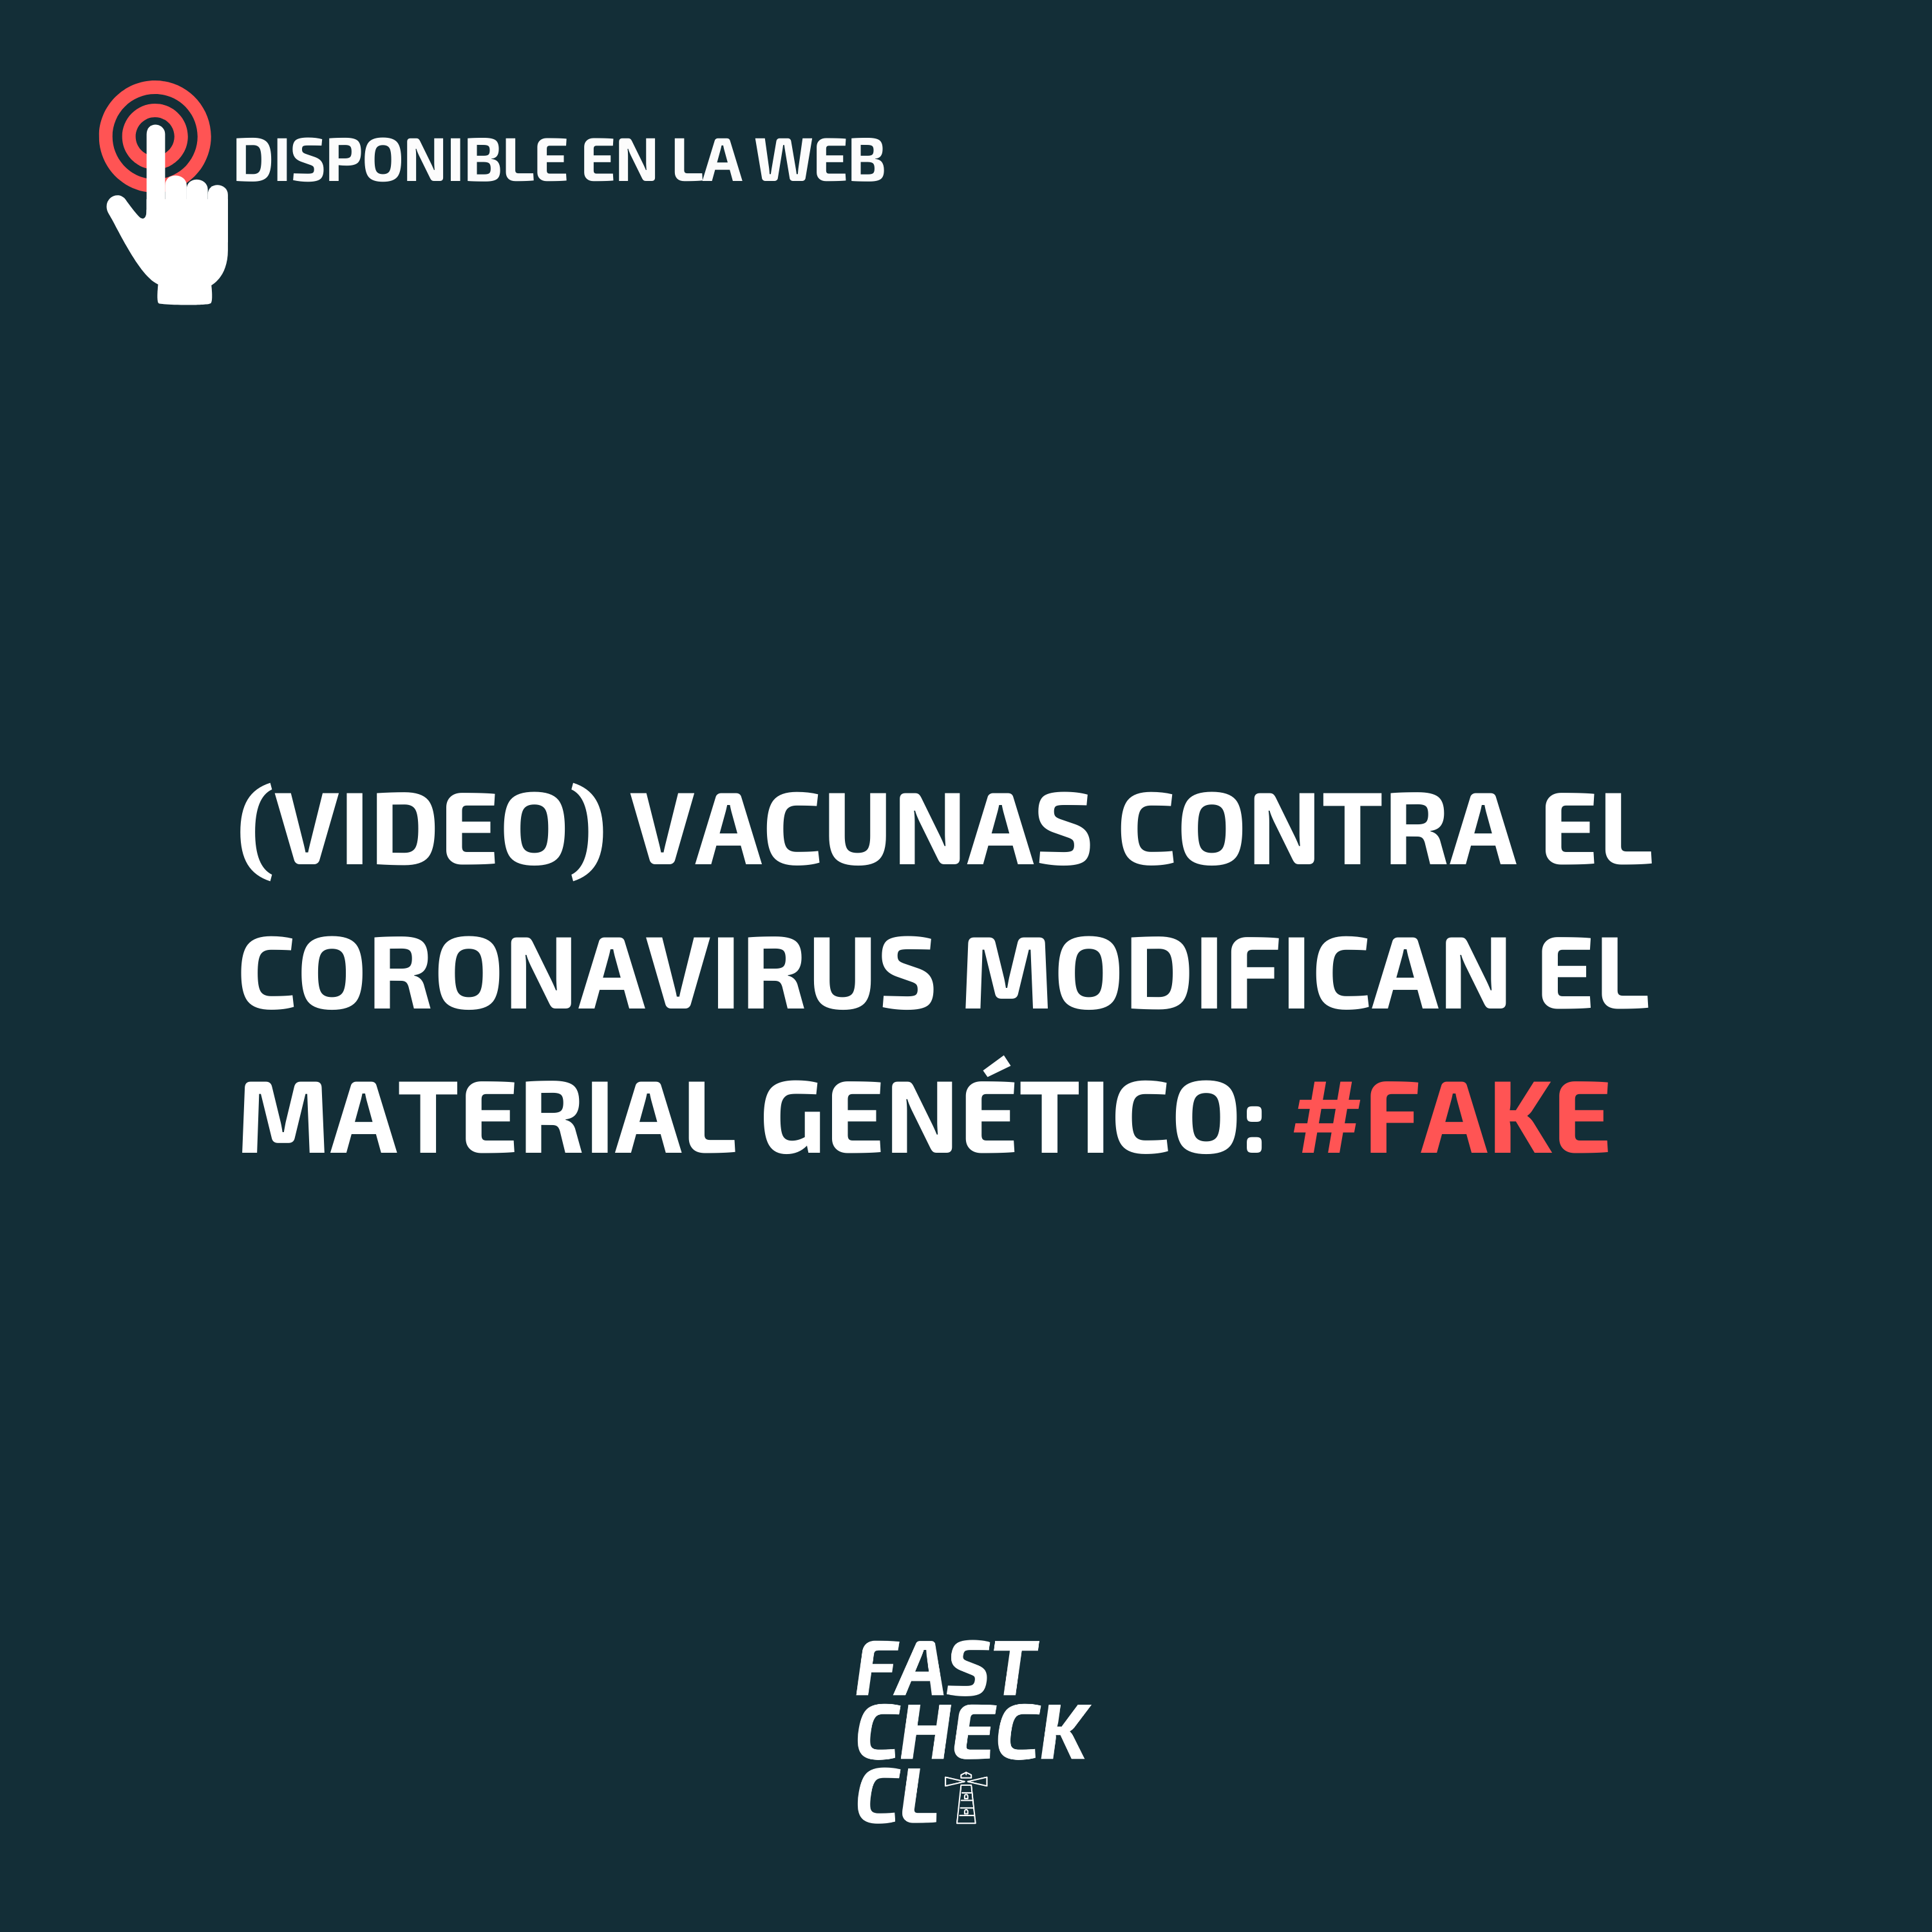 (Video) Vacunas contra el coronavirus modifican el material genético: #Fake